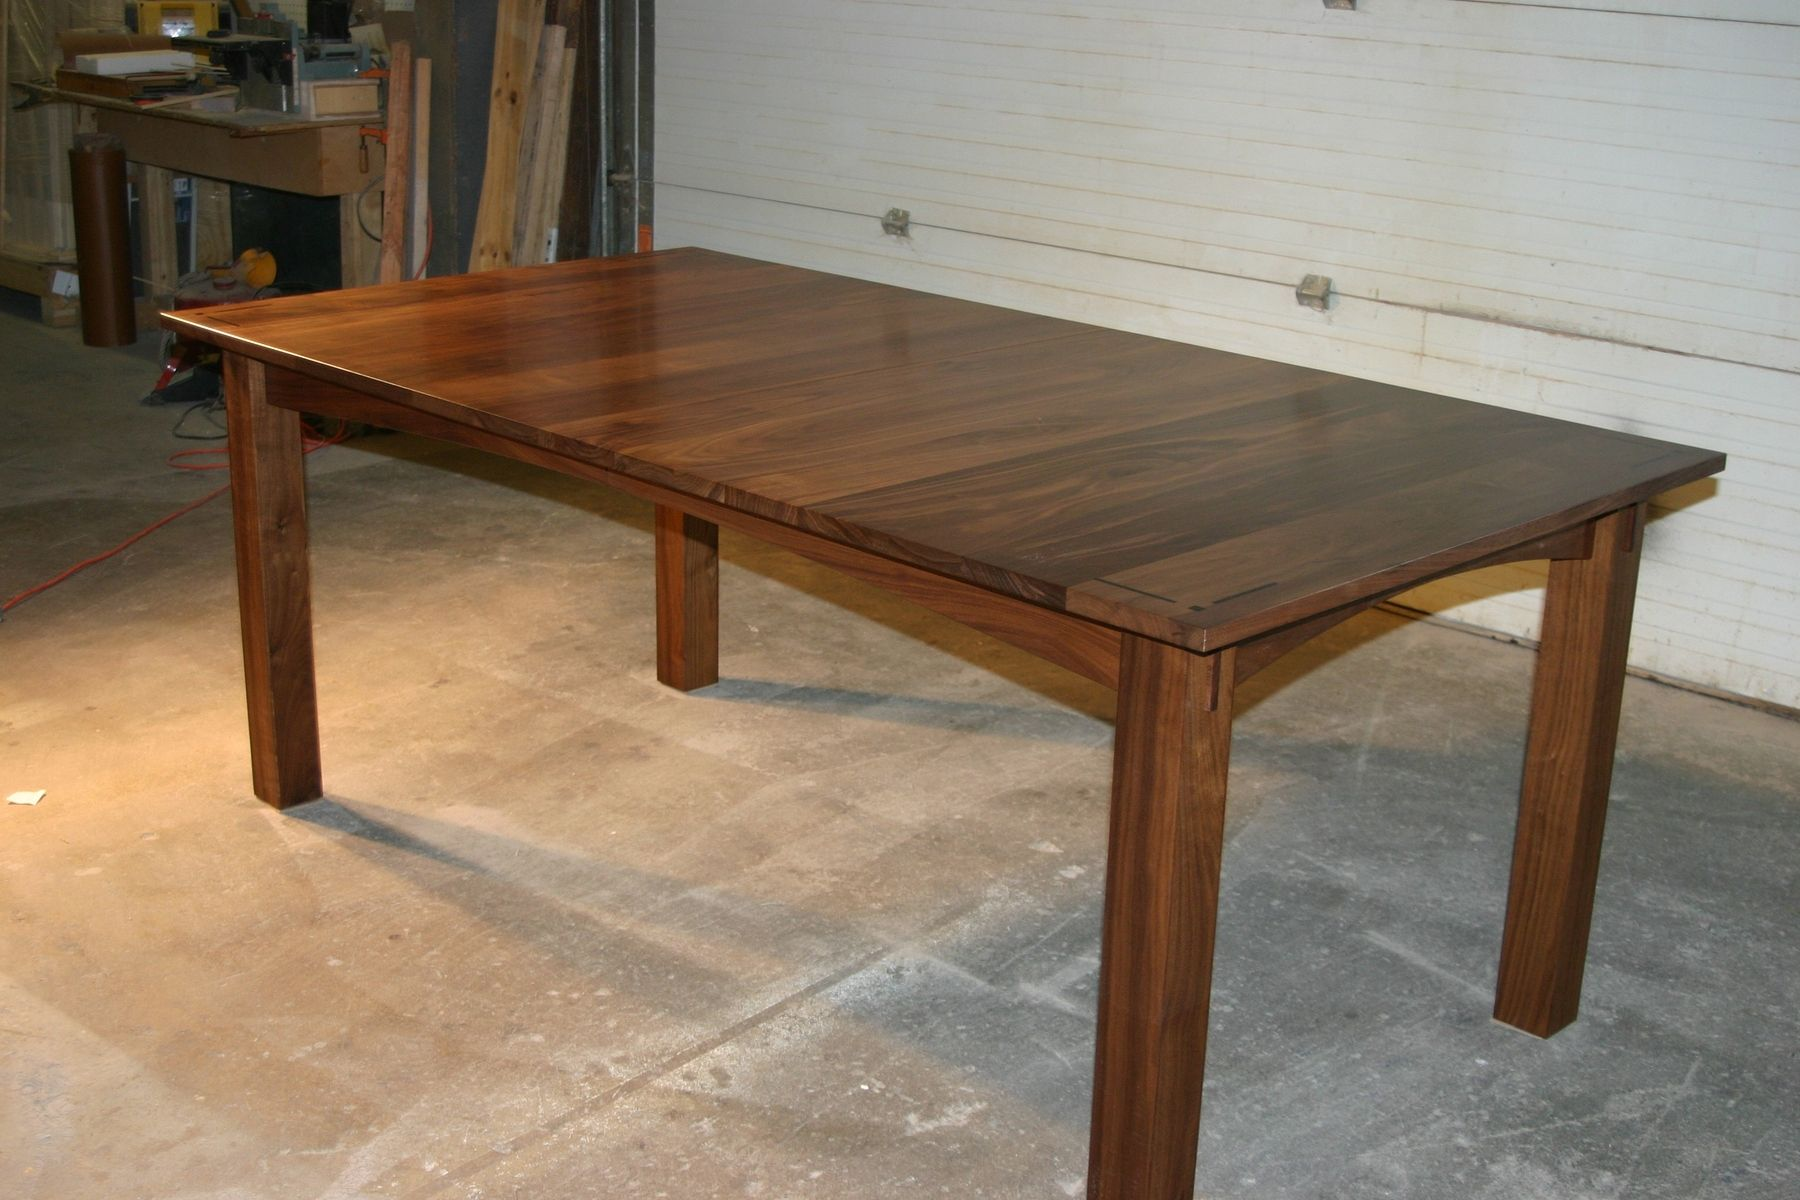 Handmade Walnut Dining Table by Canton Studio | CustomMade.com